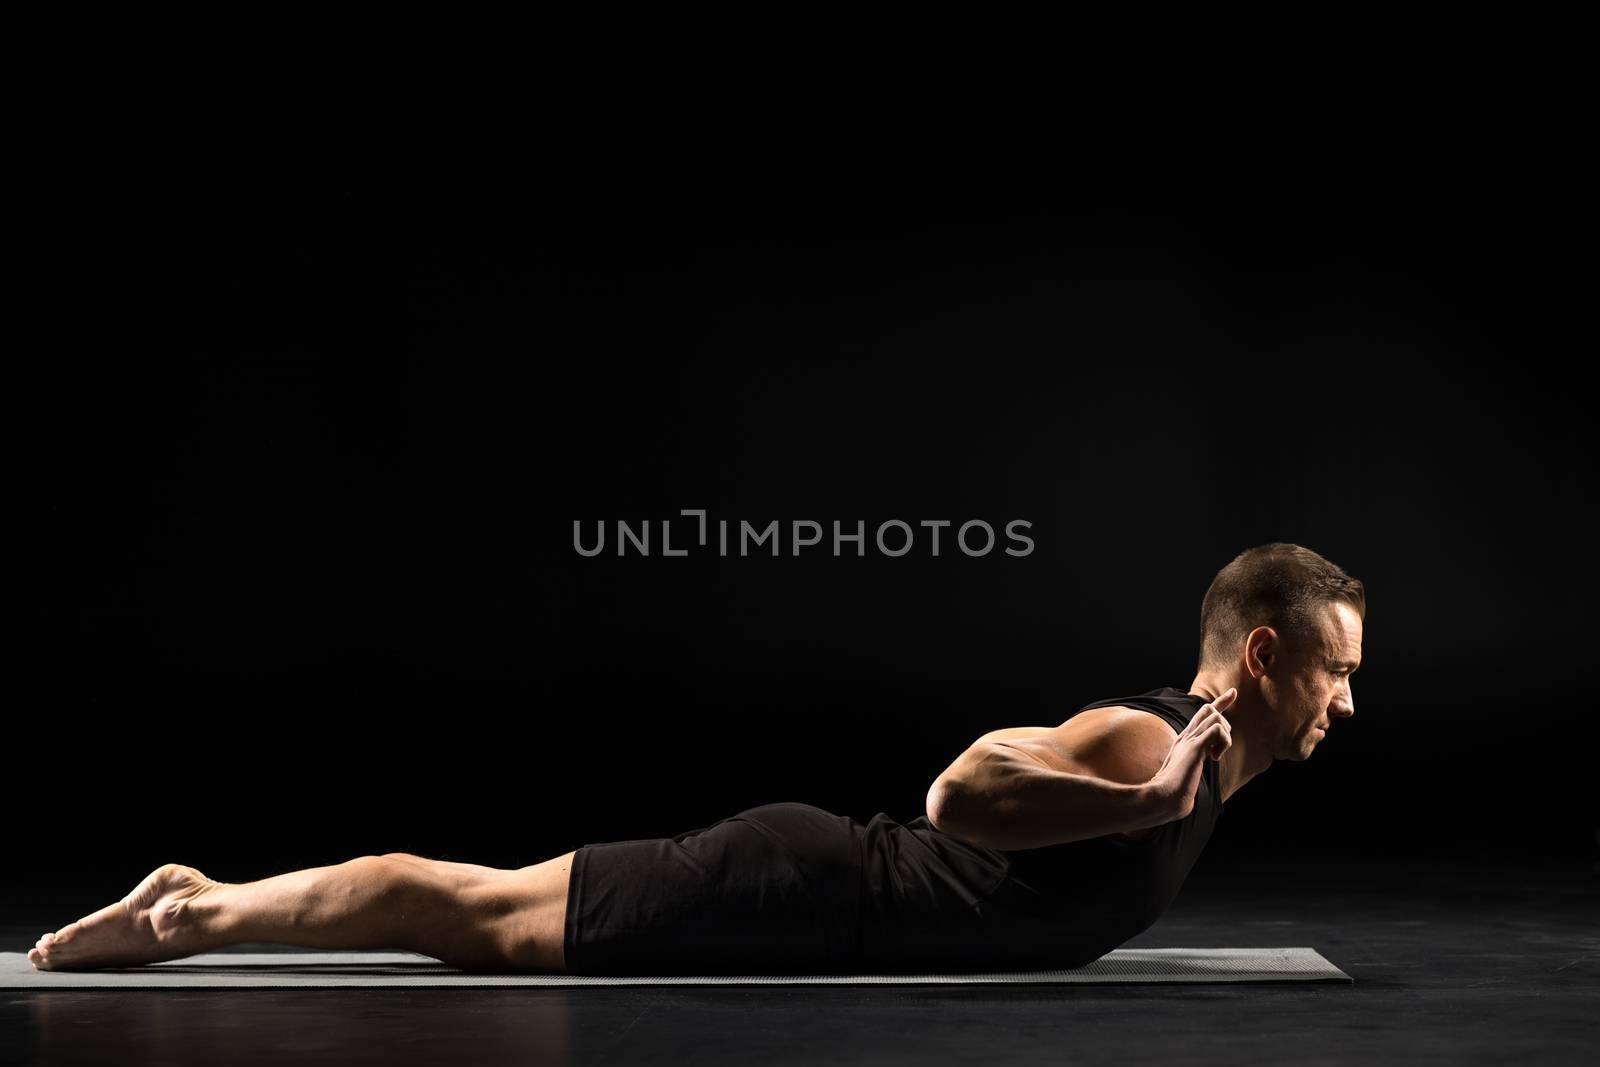 Young athletic man practicing yoga on yoga mat